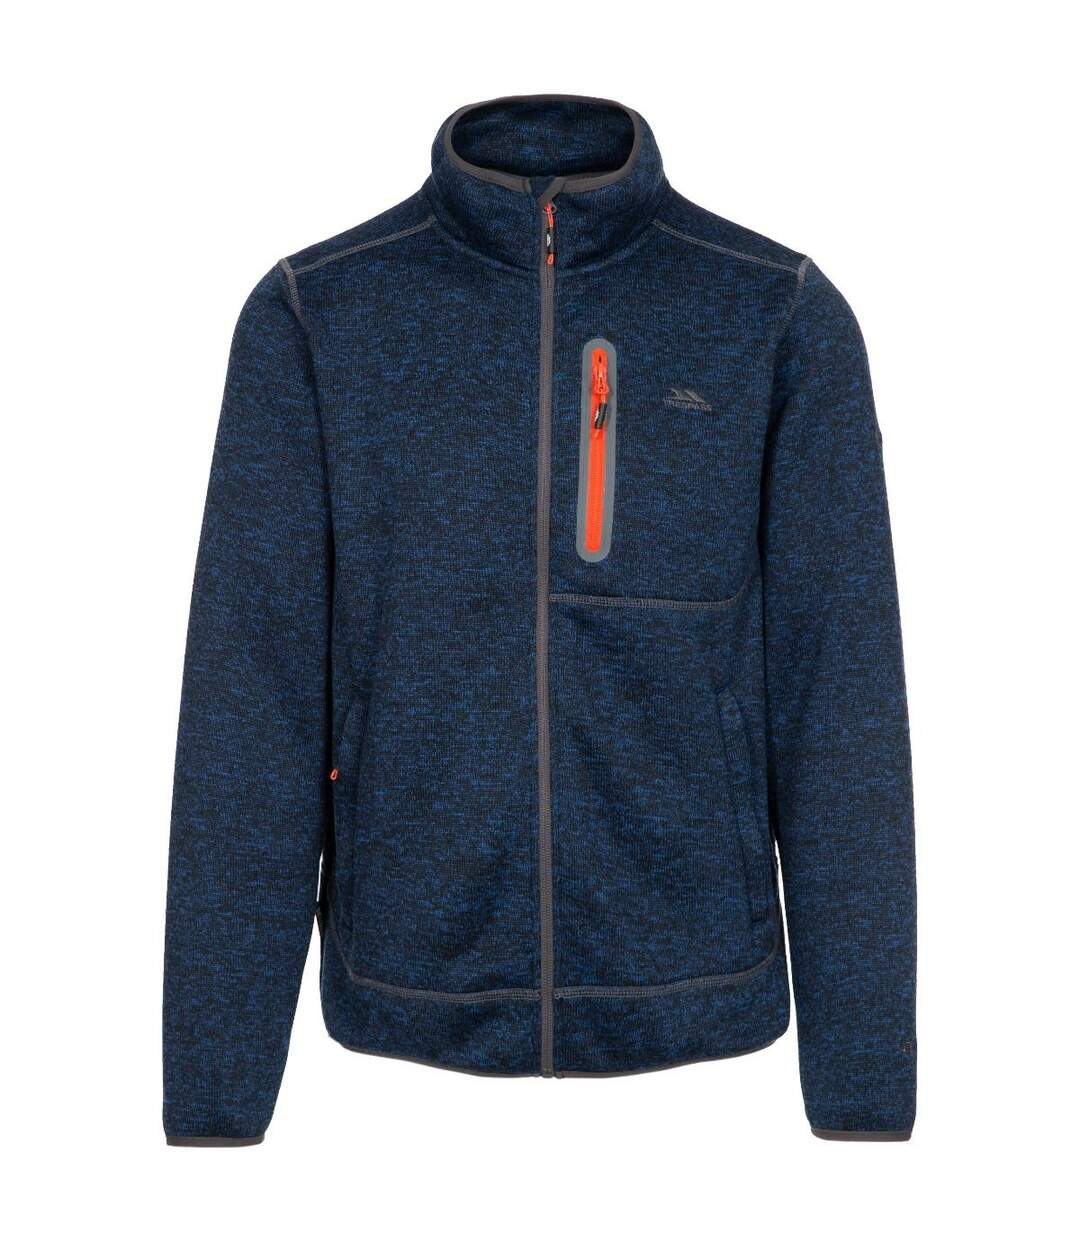 Trespass Mens Bingham Fleece Jacket (Navy Marl) - UTTP4287